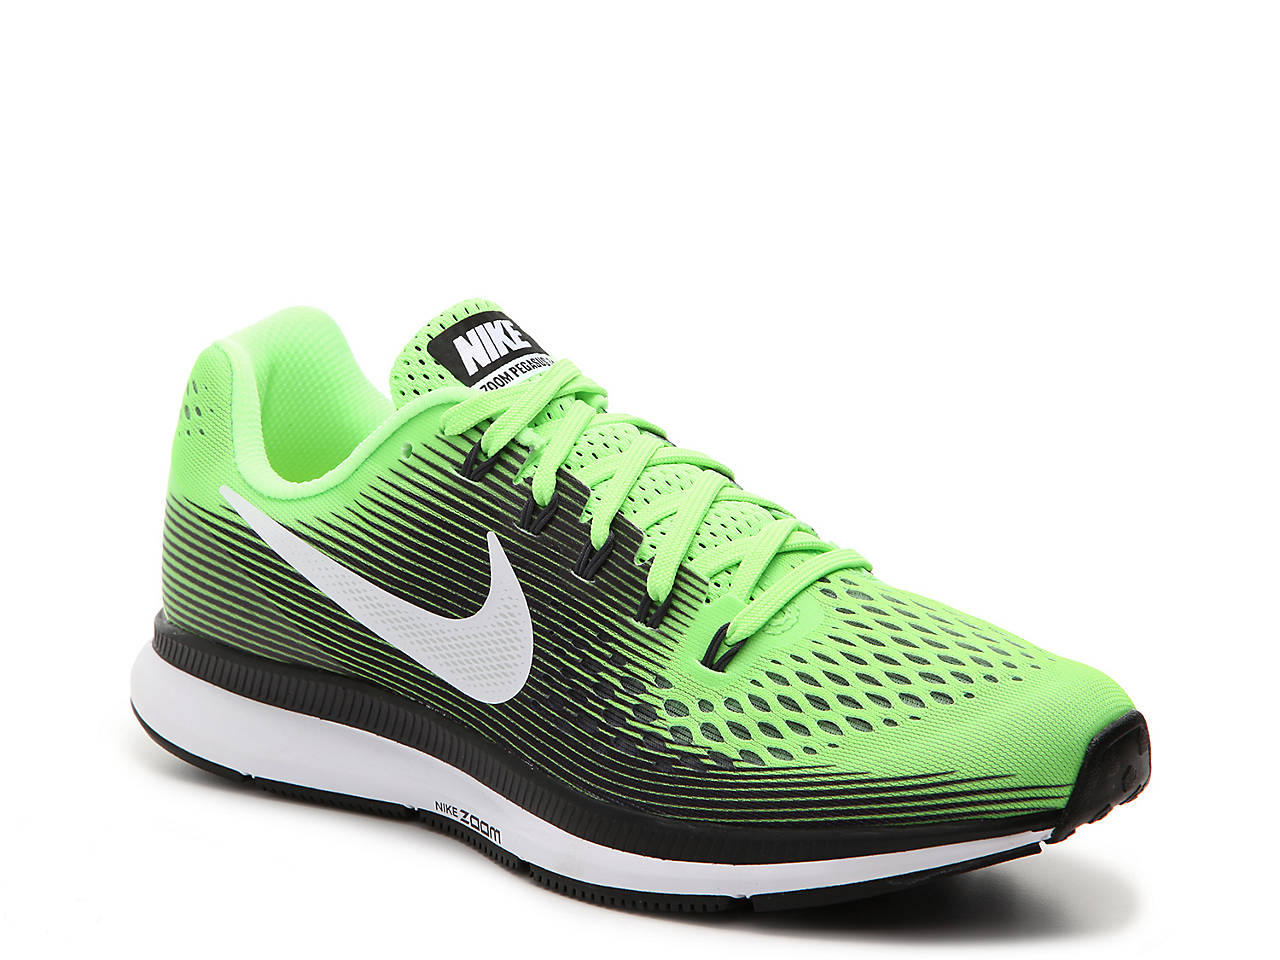 sale retailer 32711 b0cc8 Air Zoom Pegasus 34 Lightweight Running Shoe - Men's